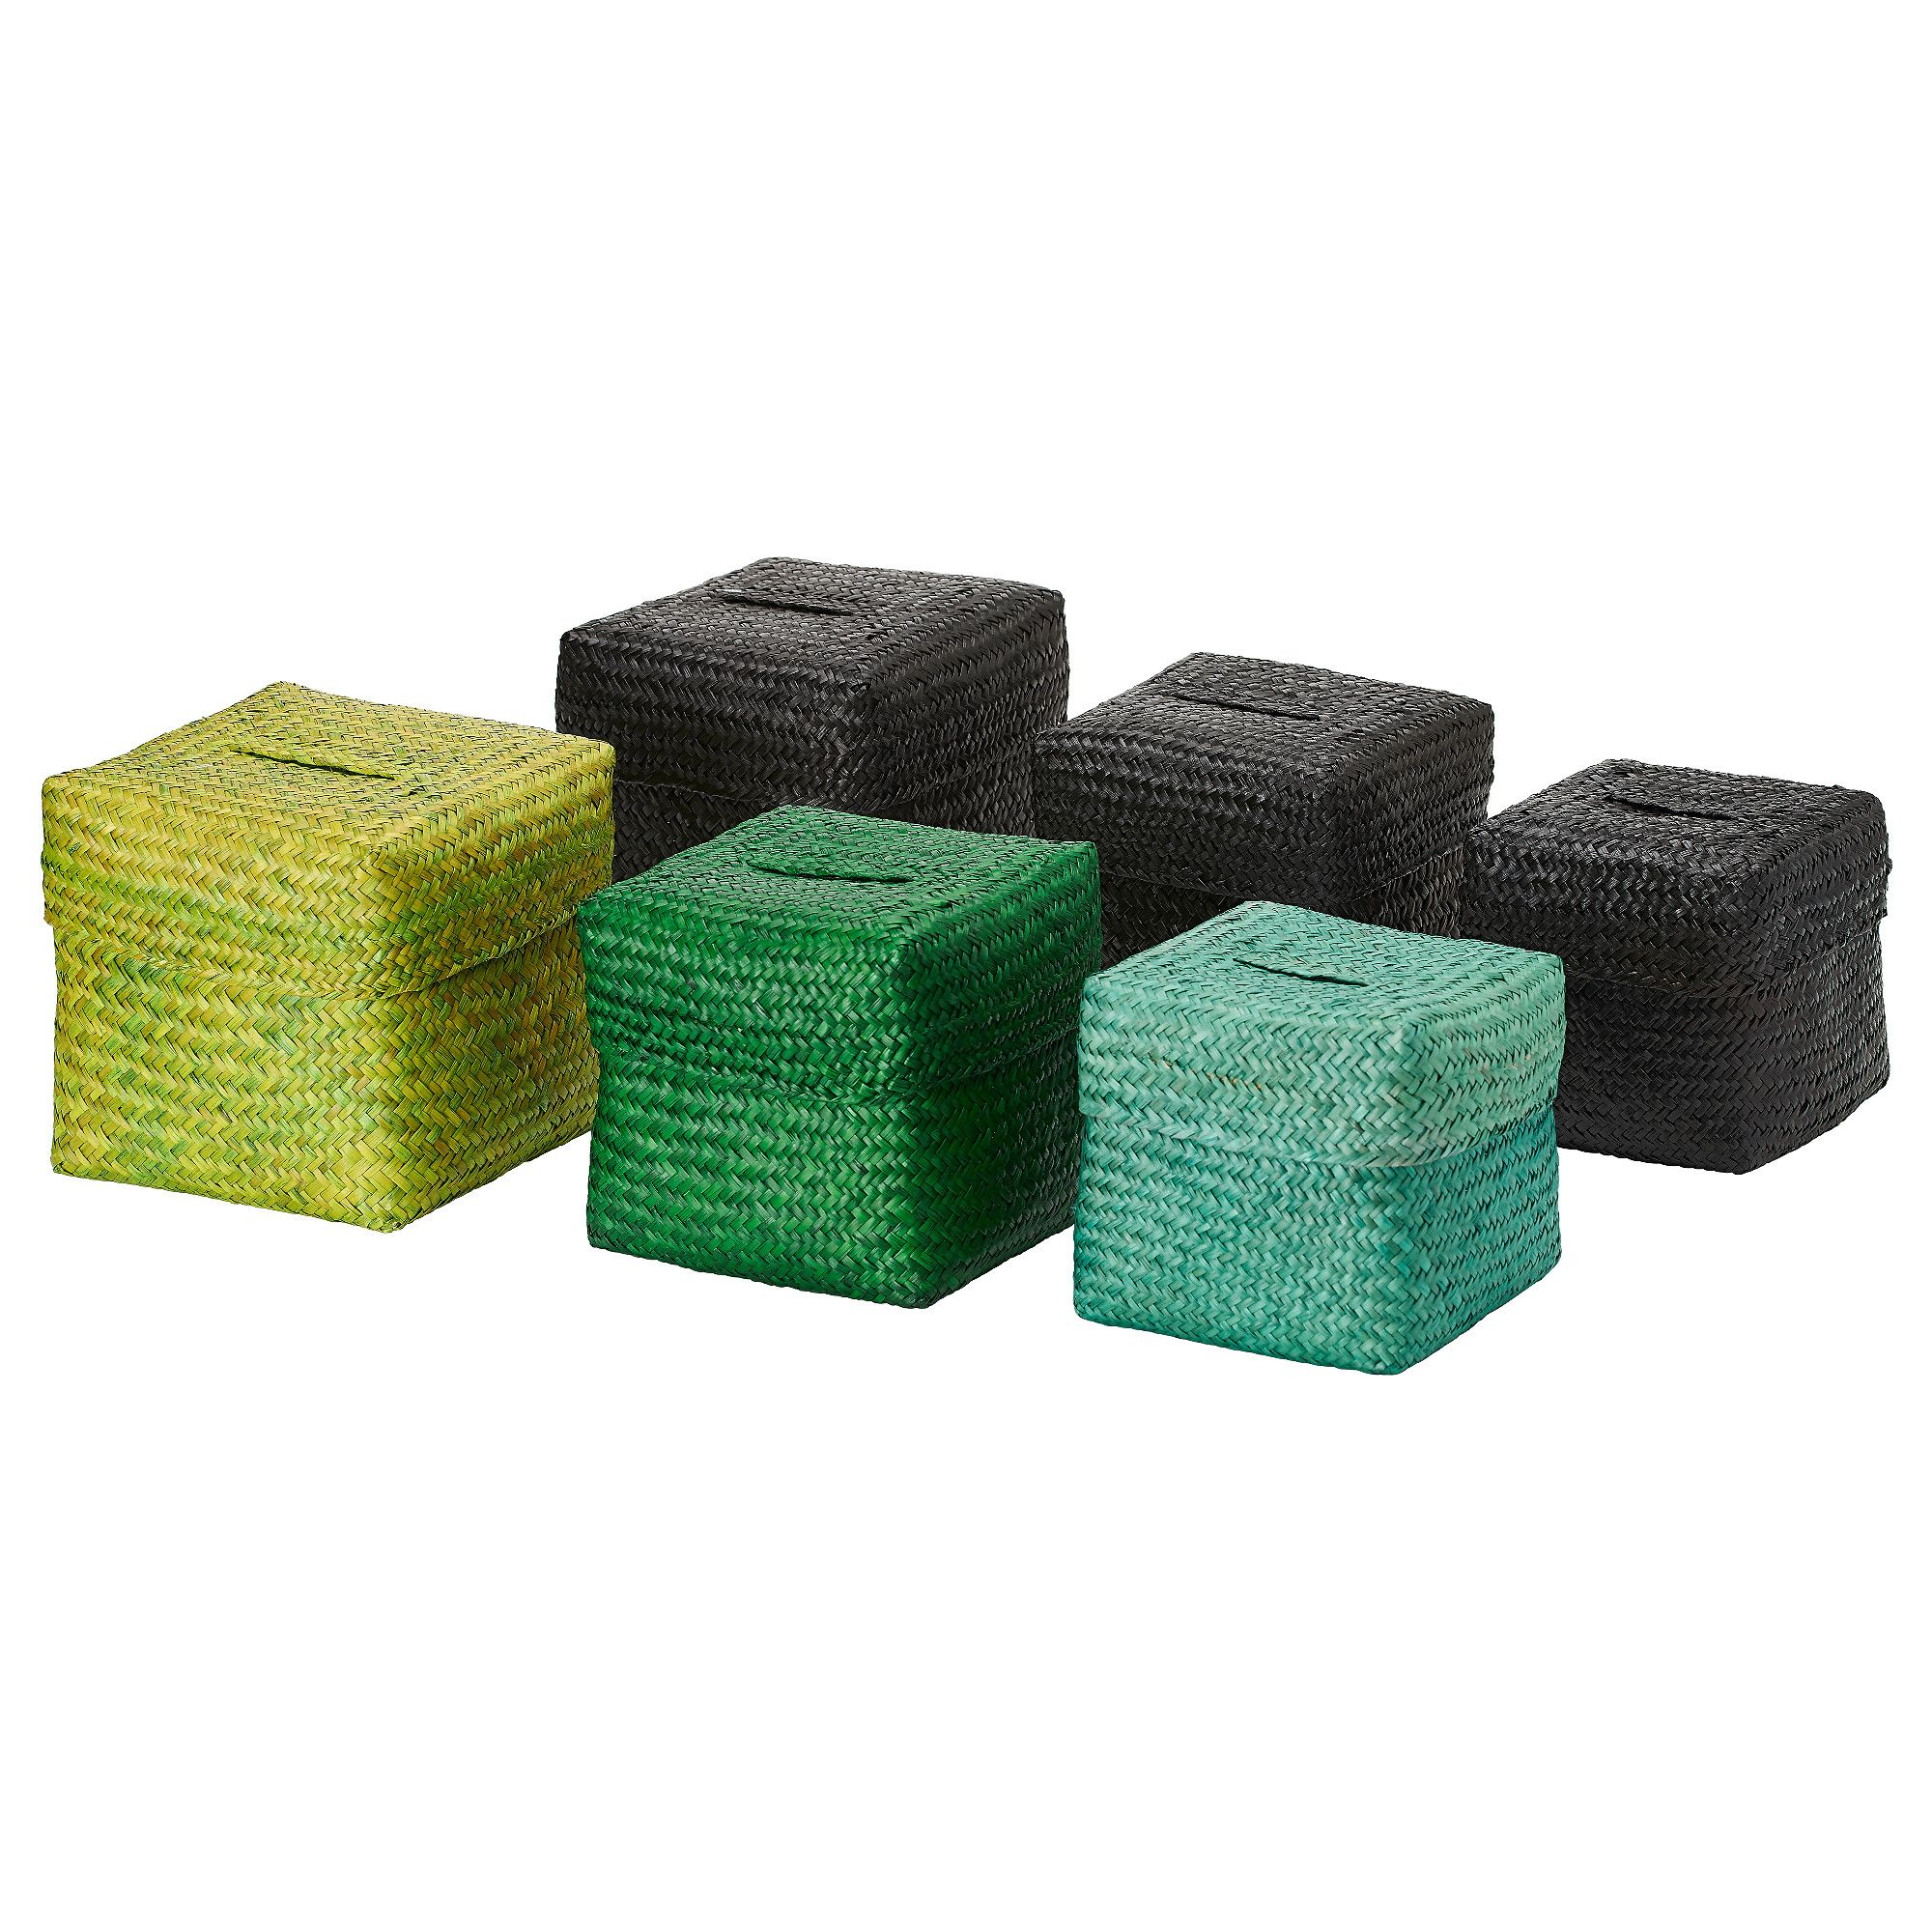 NIPPRIG 2015 Box with lid, set of 3 - assorted colors - IKEA